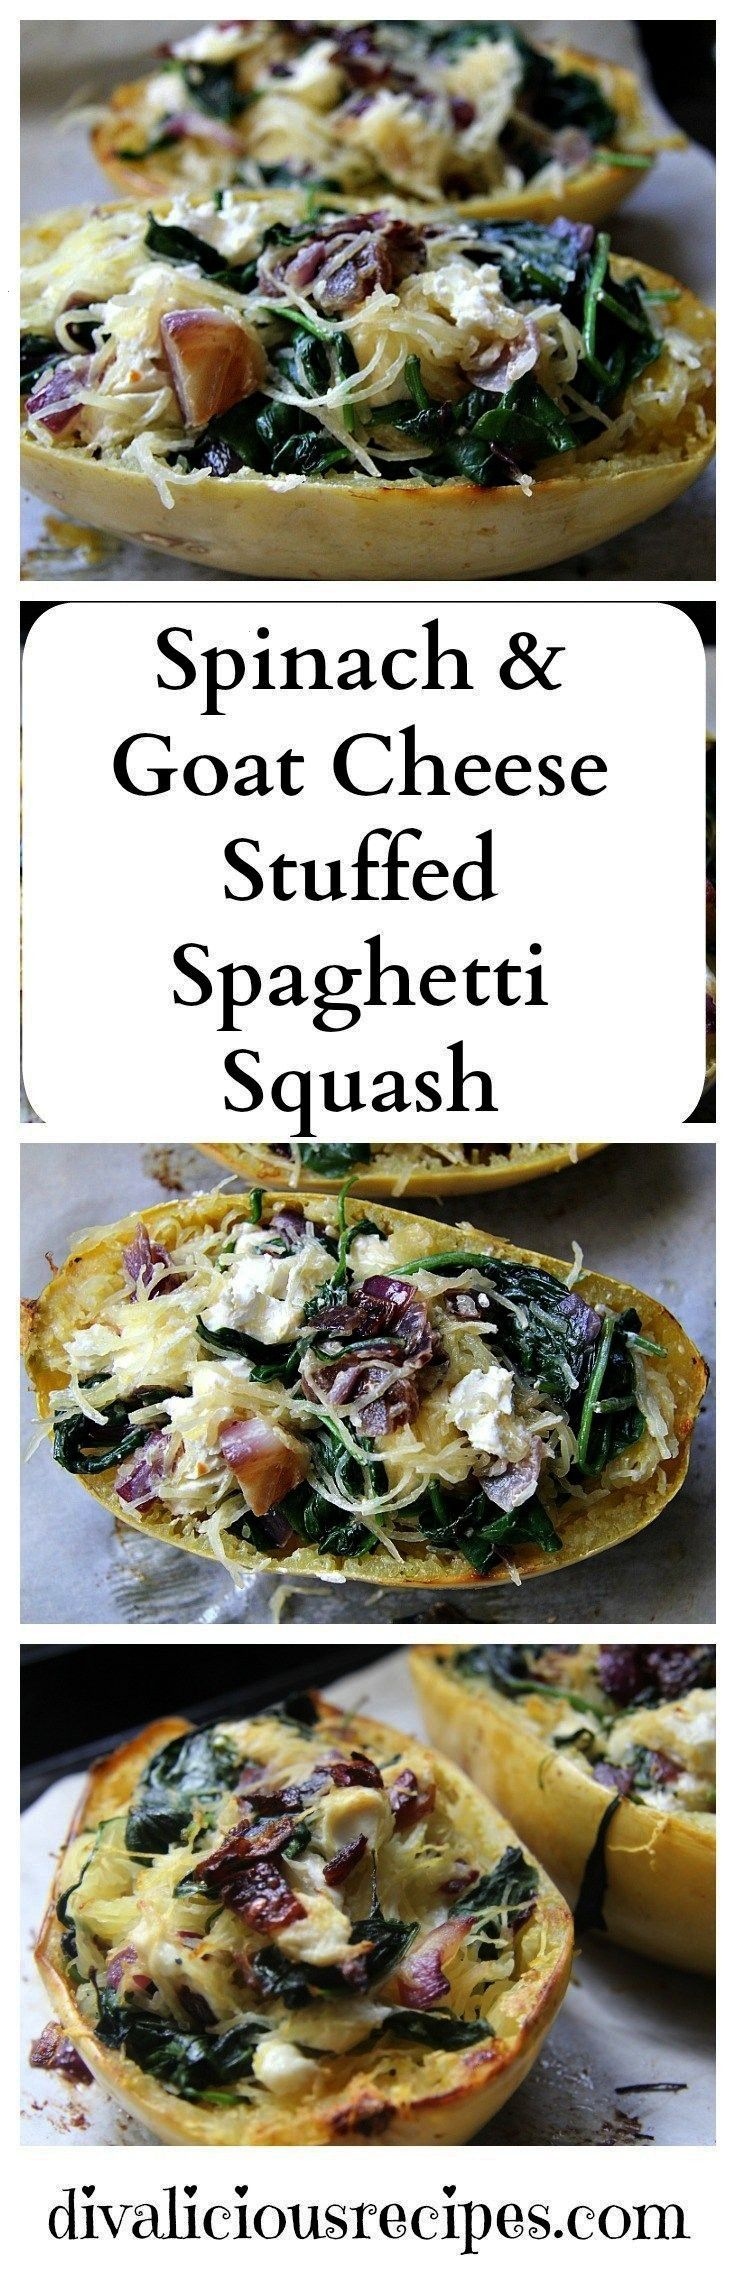 #patijinichrecipes #vegetariandish #spaghetti #spinach #stuffed #cheese #squash #recipe #goat #this #spagSpinach & Goat Cheese Stuffed Spaghetti Squash This stuffed spag... -  Spinach & Goat Cheese Stuffed Spaghetti Squash This stuffed spaghetti squash recipe -Spinach & Goat Cheese Stuffed Spaghetti Squash This stuffed spag... -  Spinach & Goat Cheese Stuffed Spaghetti Squash This stuffed spaghetti squash recipe -  Red, yellow, orange and green tomatoes dot this colorful, crispy, and slig... #stuffedspaghettisquash